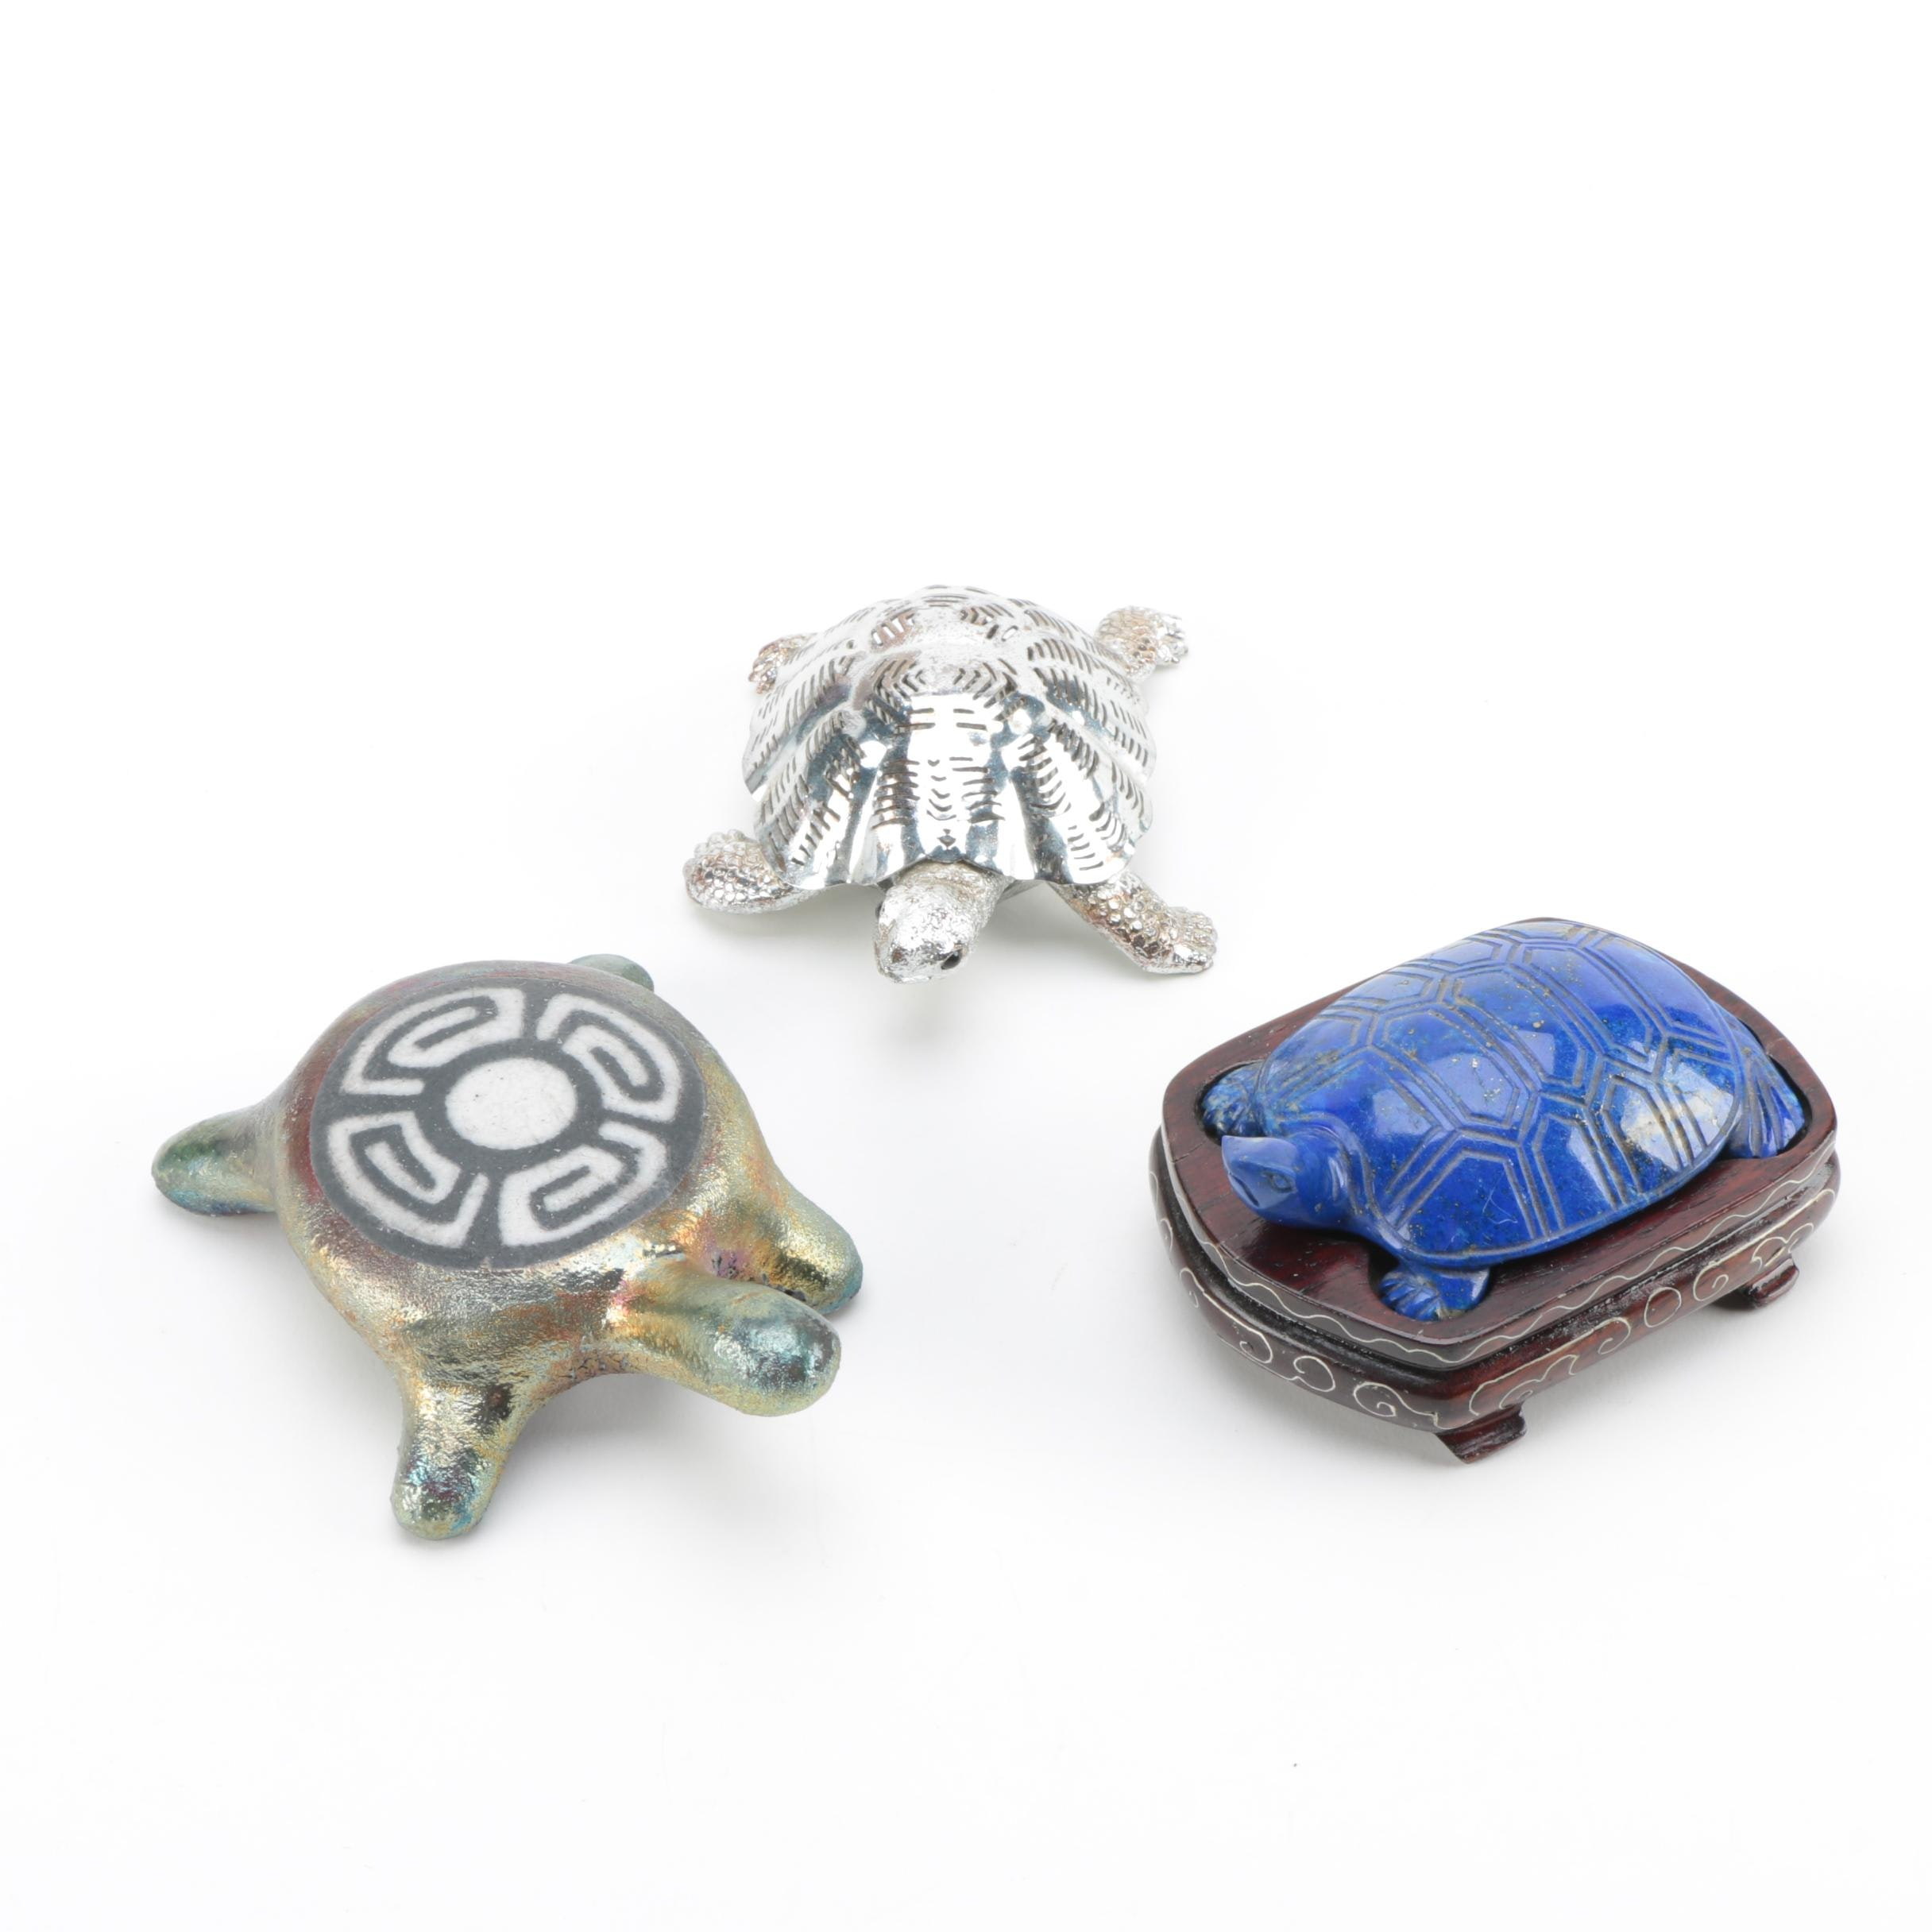 Christofle Silver Plate Turtle Paperweight with Other Turtle Paperweights